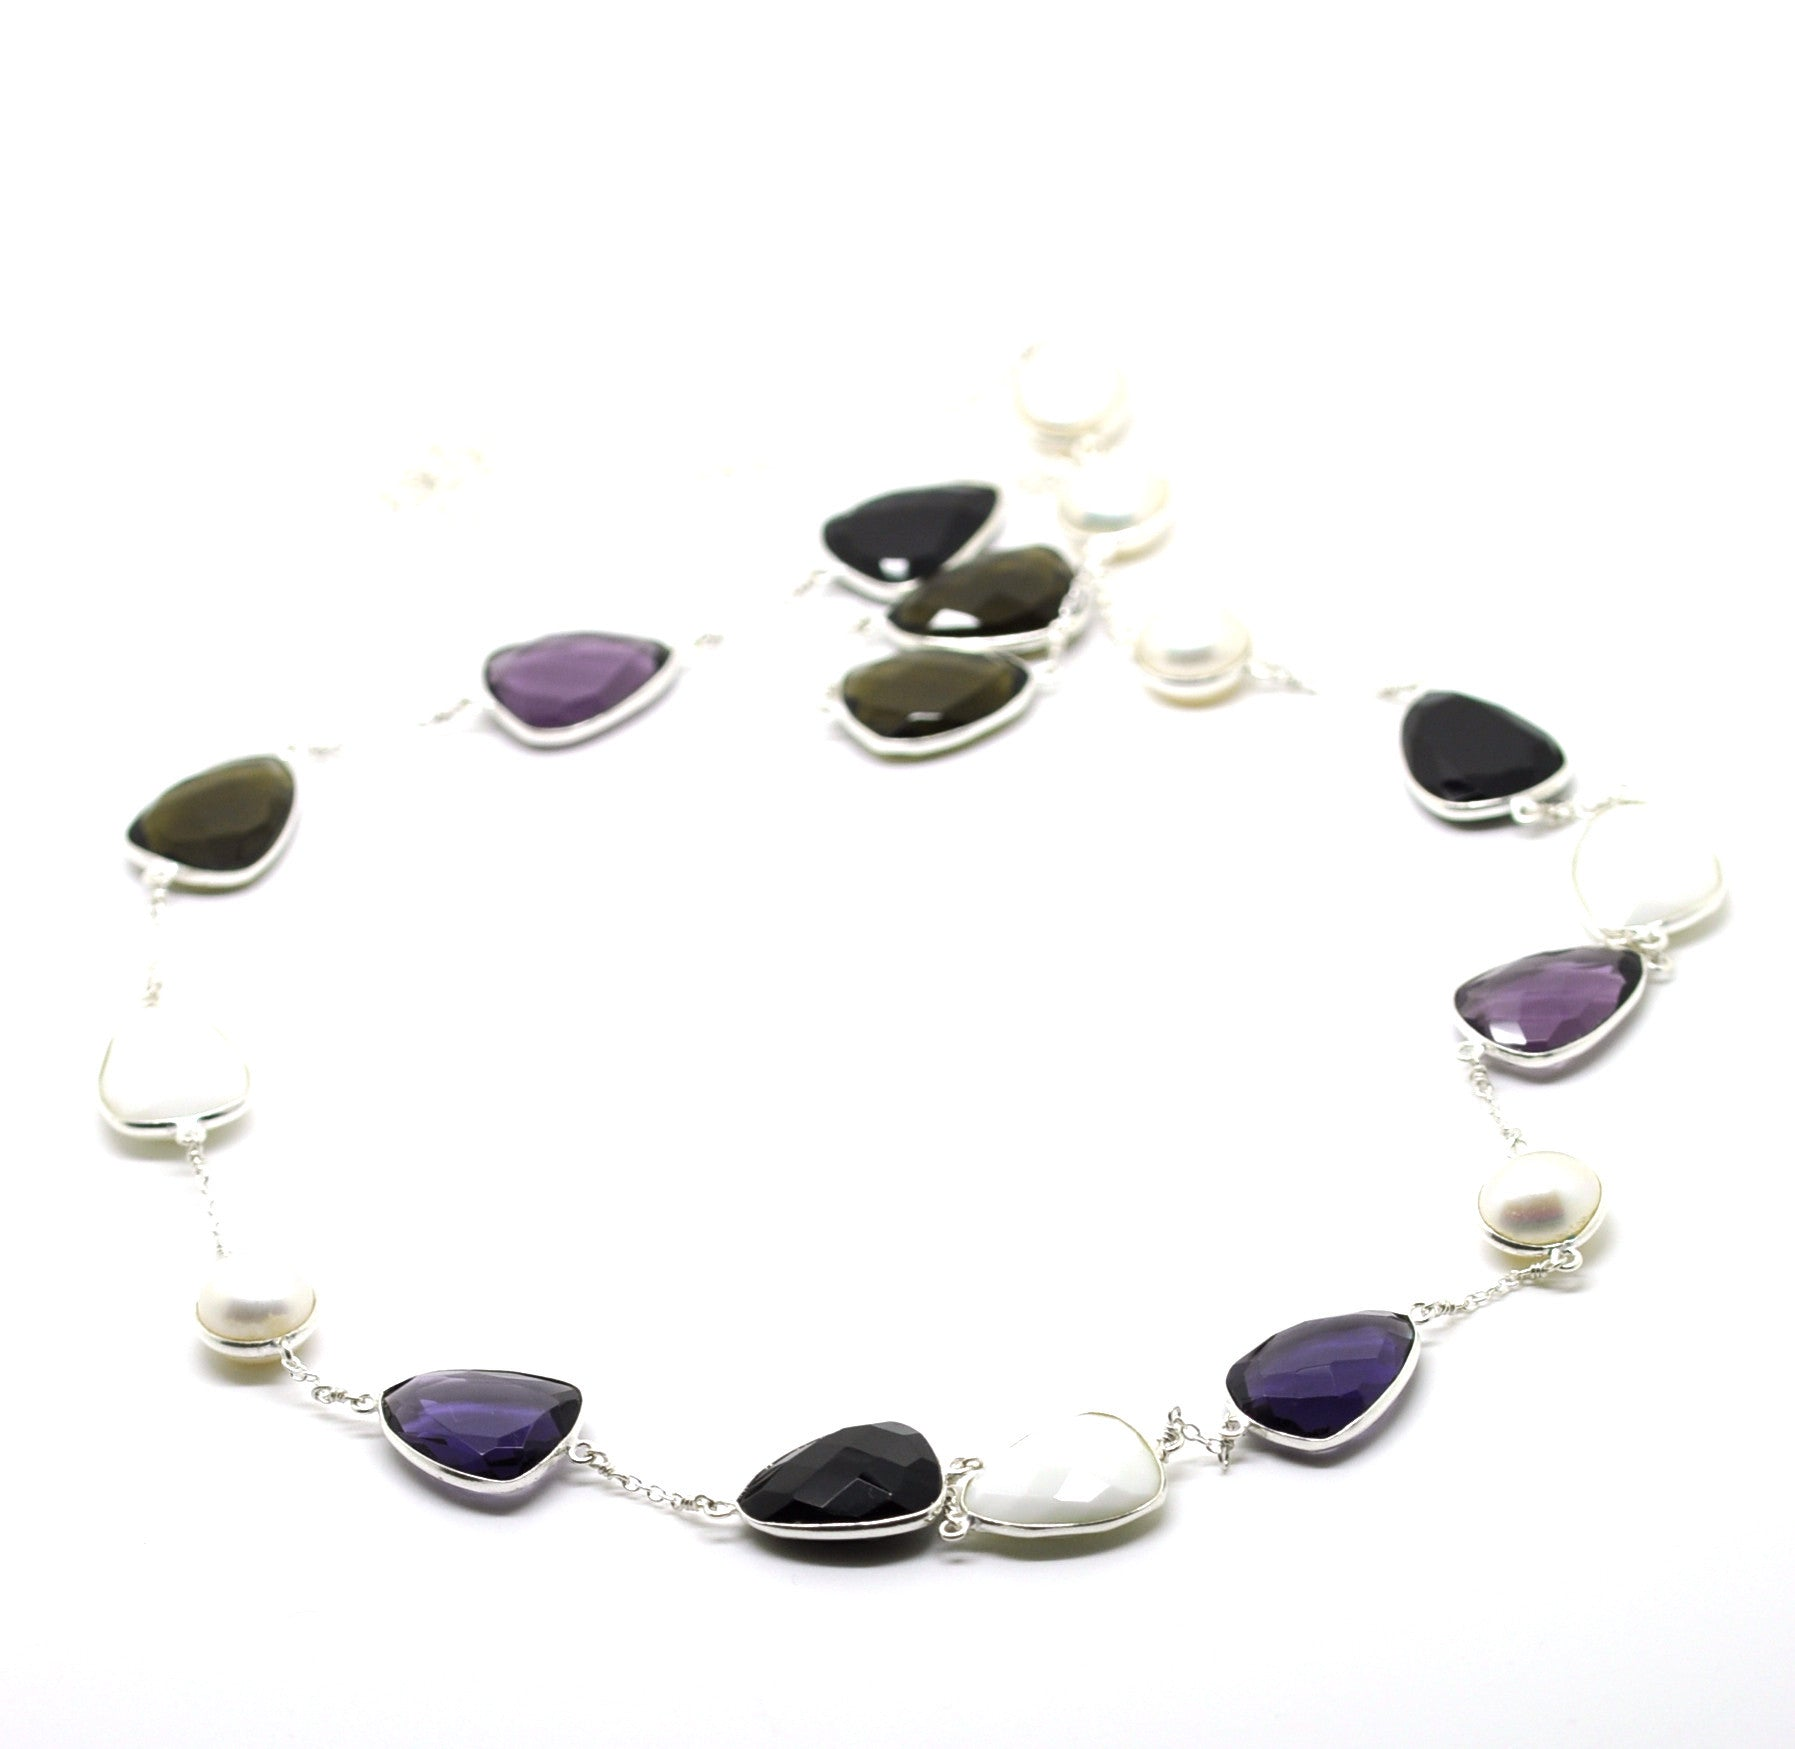 SOLD - ON SALE Gemstone Necklace (clearance price)